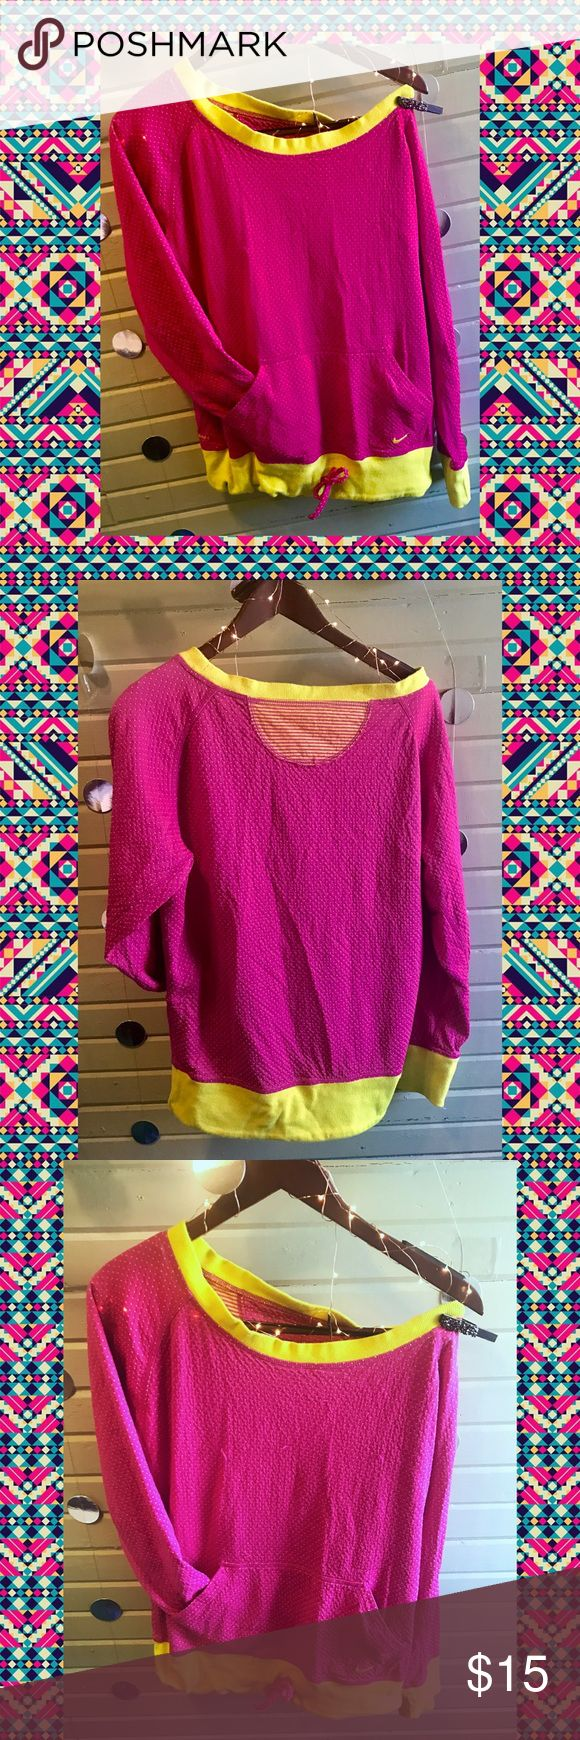 Nike Neon Pink & Yellow Slouchy Sweatshirt Fun and funky neon pink and yellow Slouchy off the shoulder style sweatshirt with a drawstring waistband. Hot neon pink textured material covered in yellow polka dots makes up most of this comfy cool Pullover. To add to the fun, it has wide neon yellow arm cuffs and waistband, which has a contrasting pink drawstring so you can customize your look. Worn off the shoulder or not, this look is comfy cool. Item is in GUC with some slight pilling.   Be…